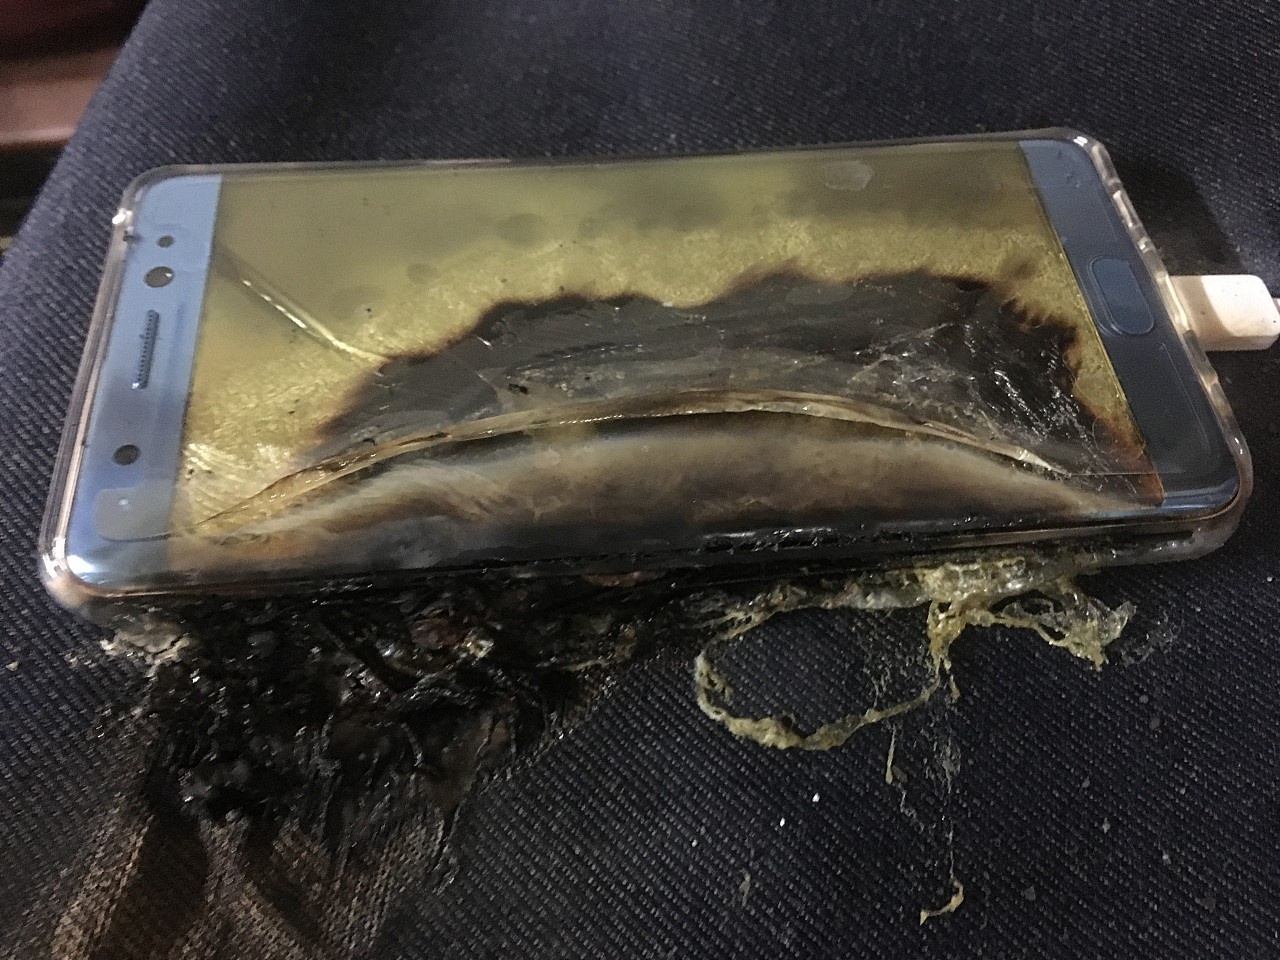 Modojo | Samsung Galaxy Note 7 Replacement Phones Also Catching Fire